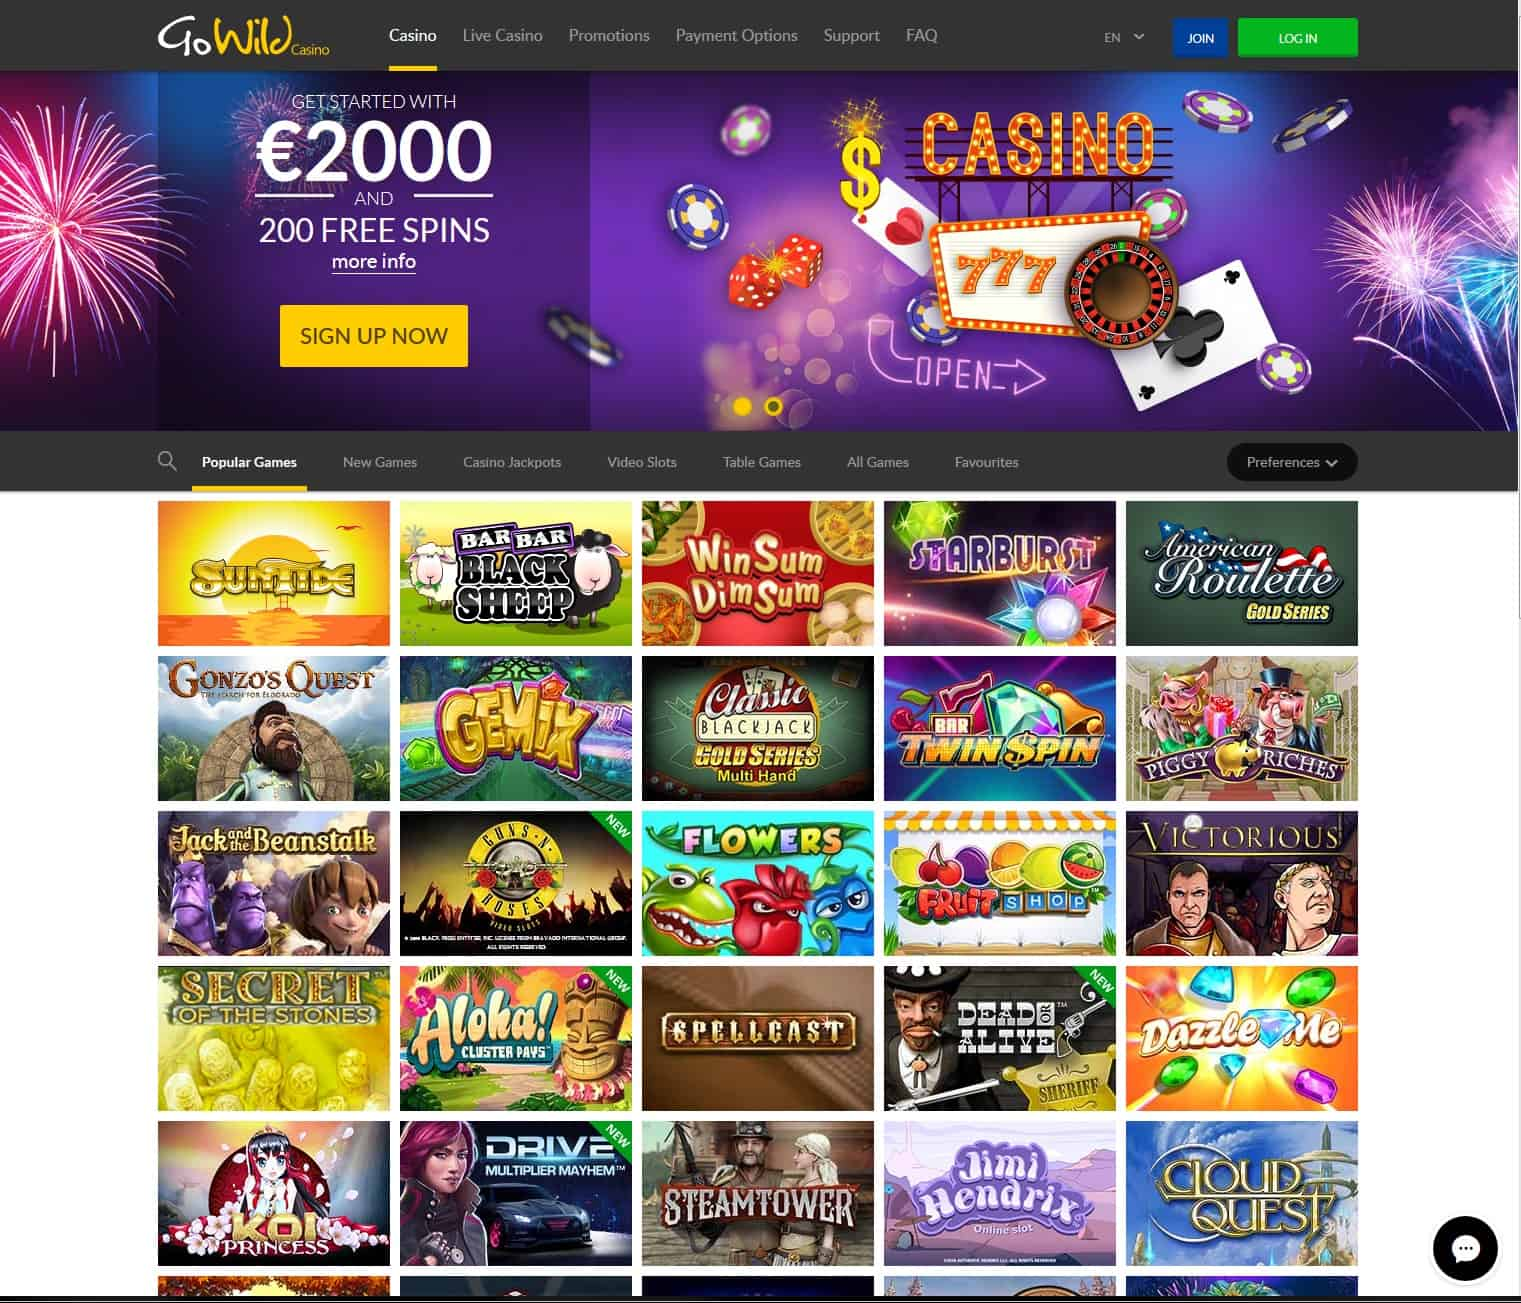 Go Wild Casino Review